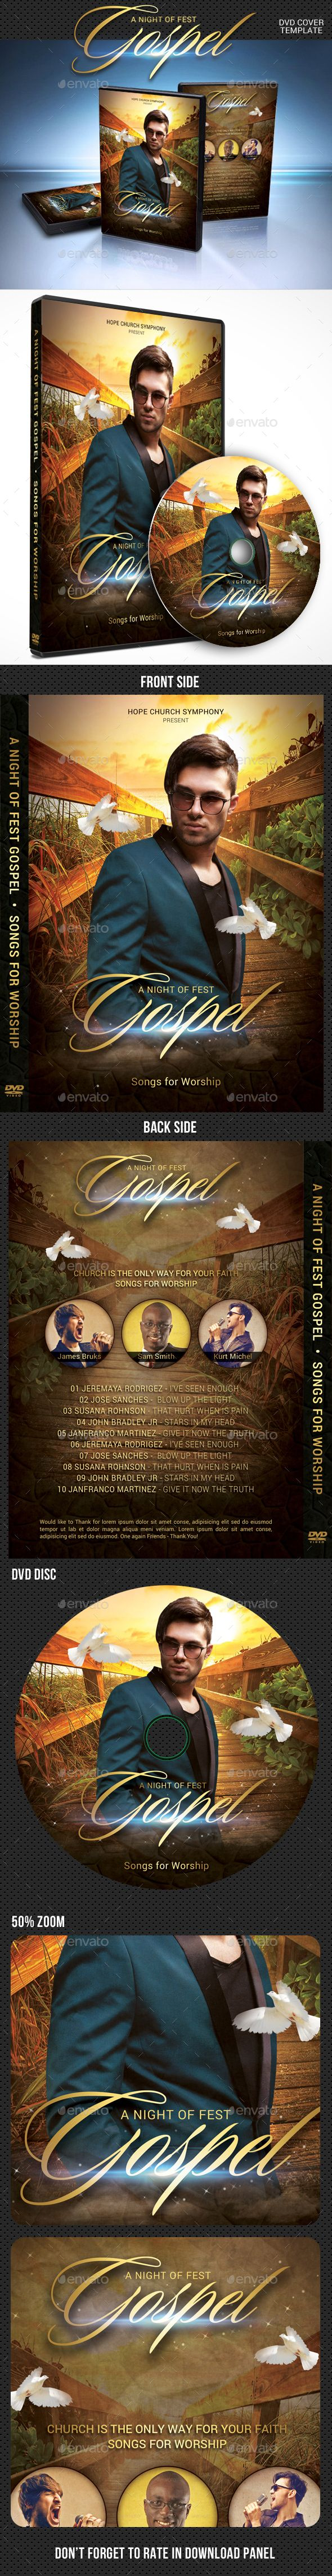 gospel fest dvd cover template cover template print templates and